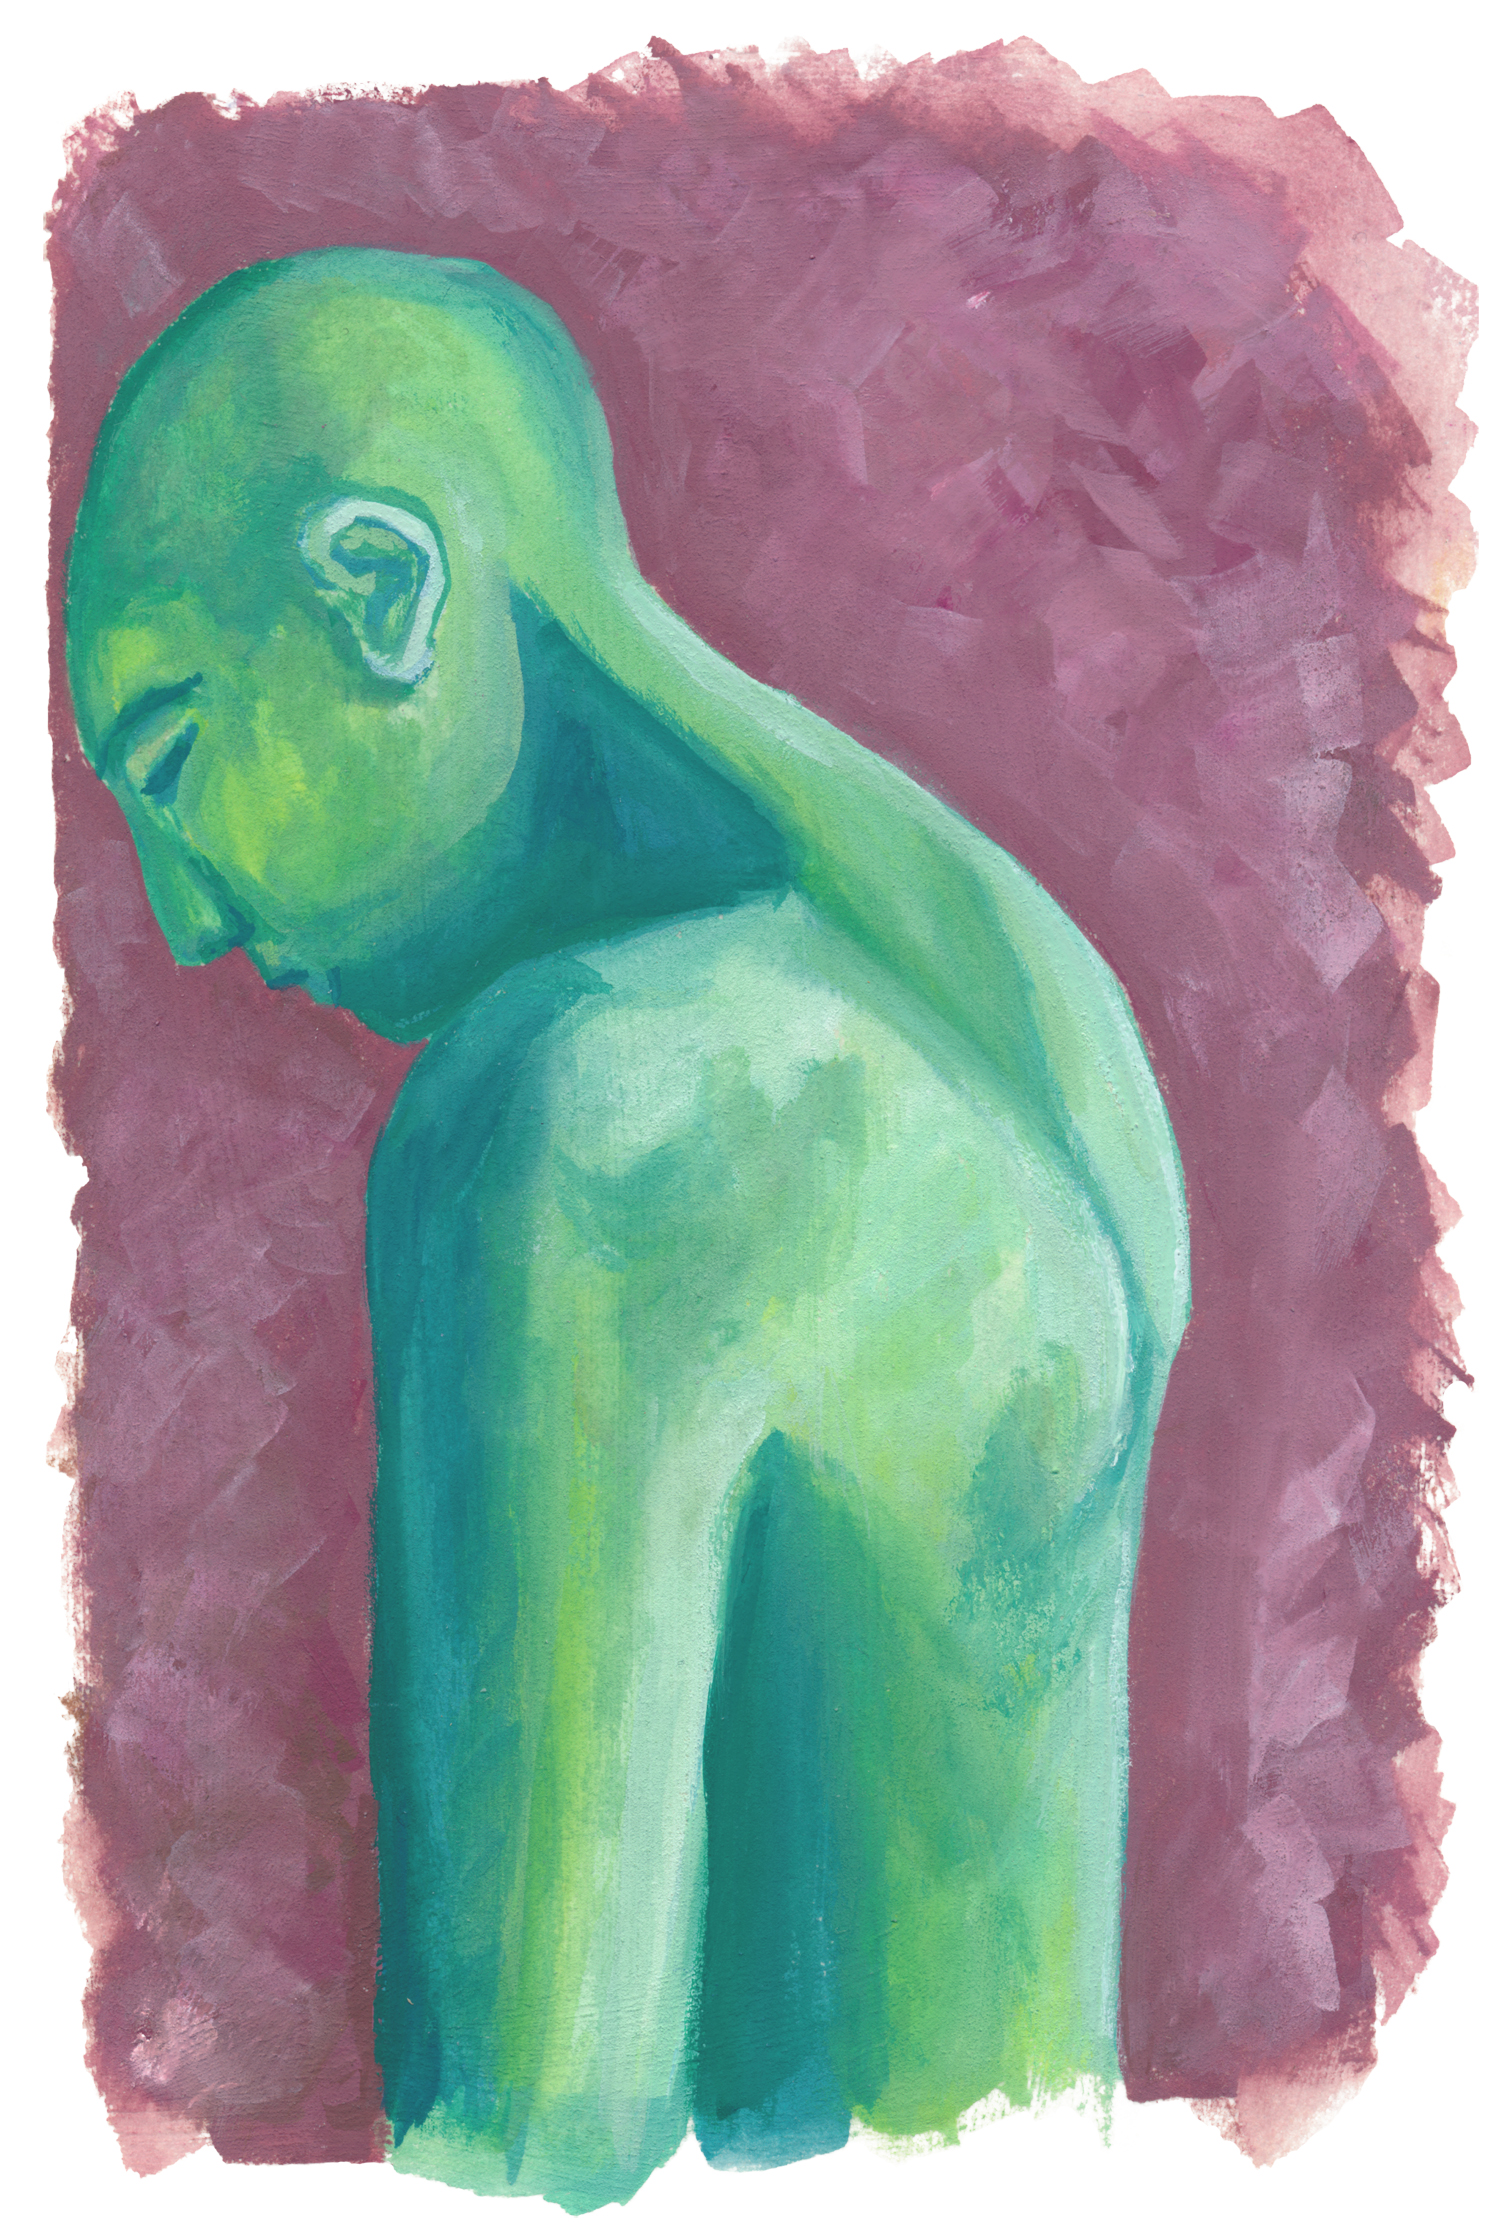 An gouache painting of a green person turned away to the side, peacefully looking down.